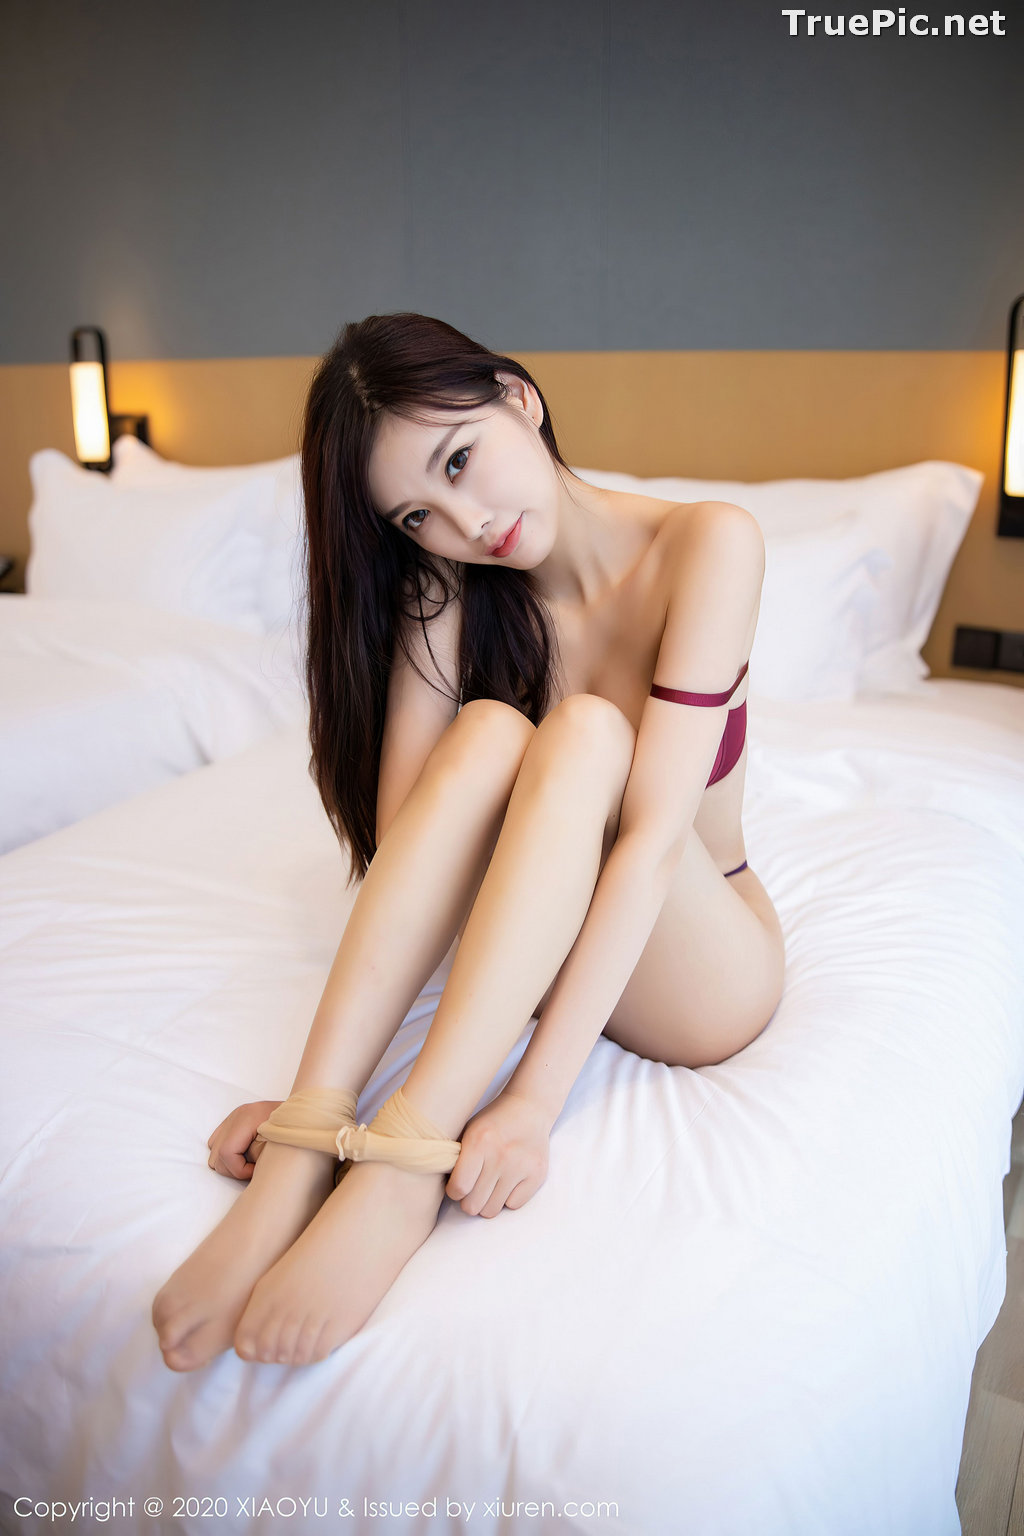 Image XiaoYu Vol.414 - Chinese Model - Yang Chen Chen (杨晨晨sugar) - Sexy Fitness Girl - TruePic.net - Picture-52